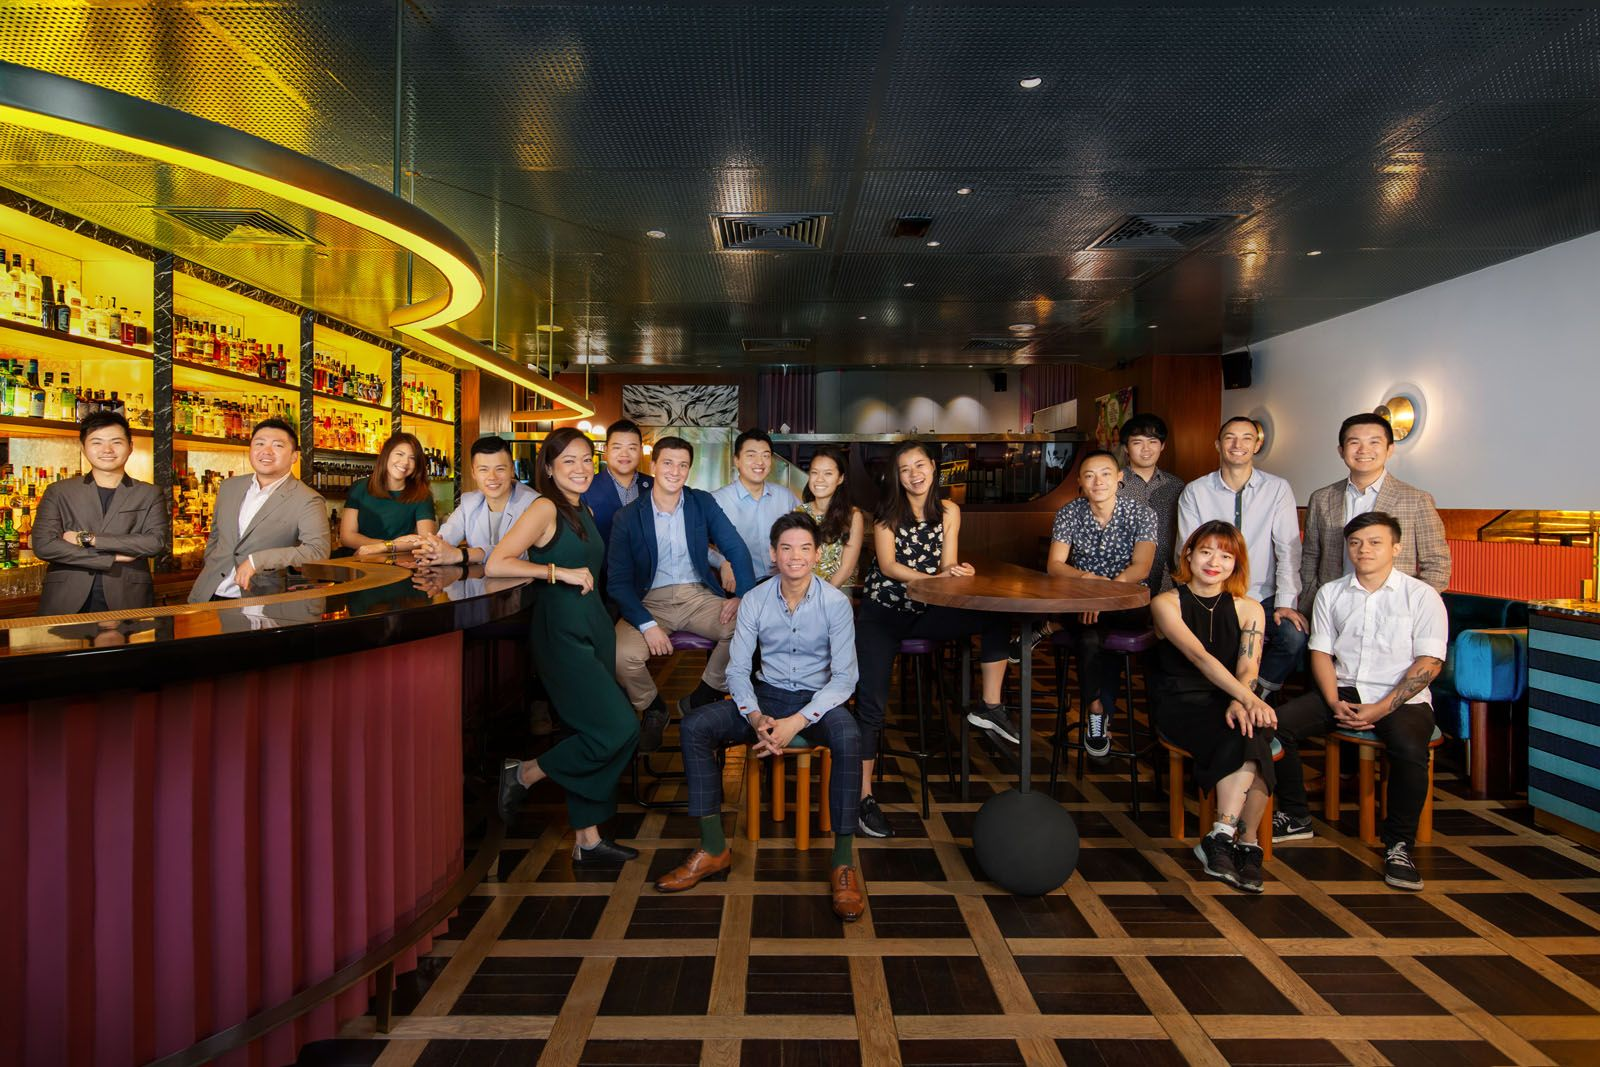 Singapore's Cocktail Haven Jigger & Pony Is The Best Bar In Asia